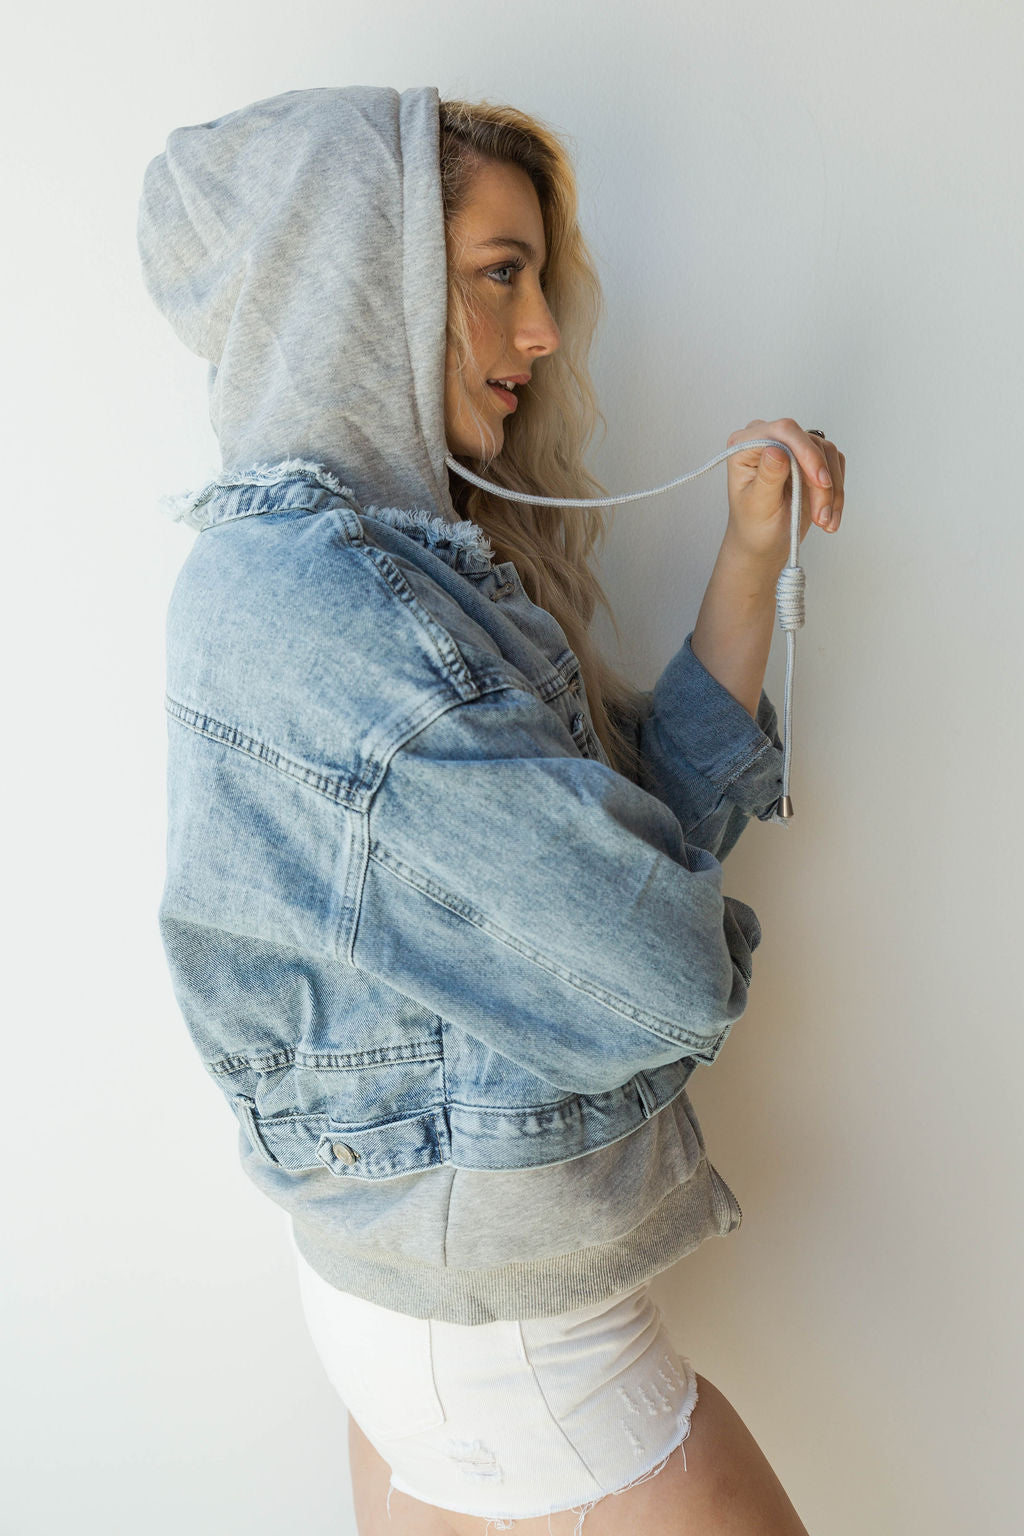 mode, just chill denim jacket